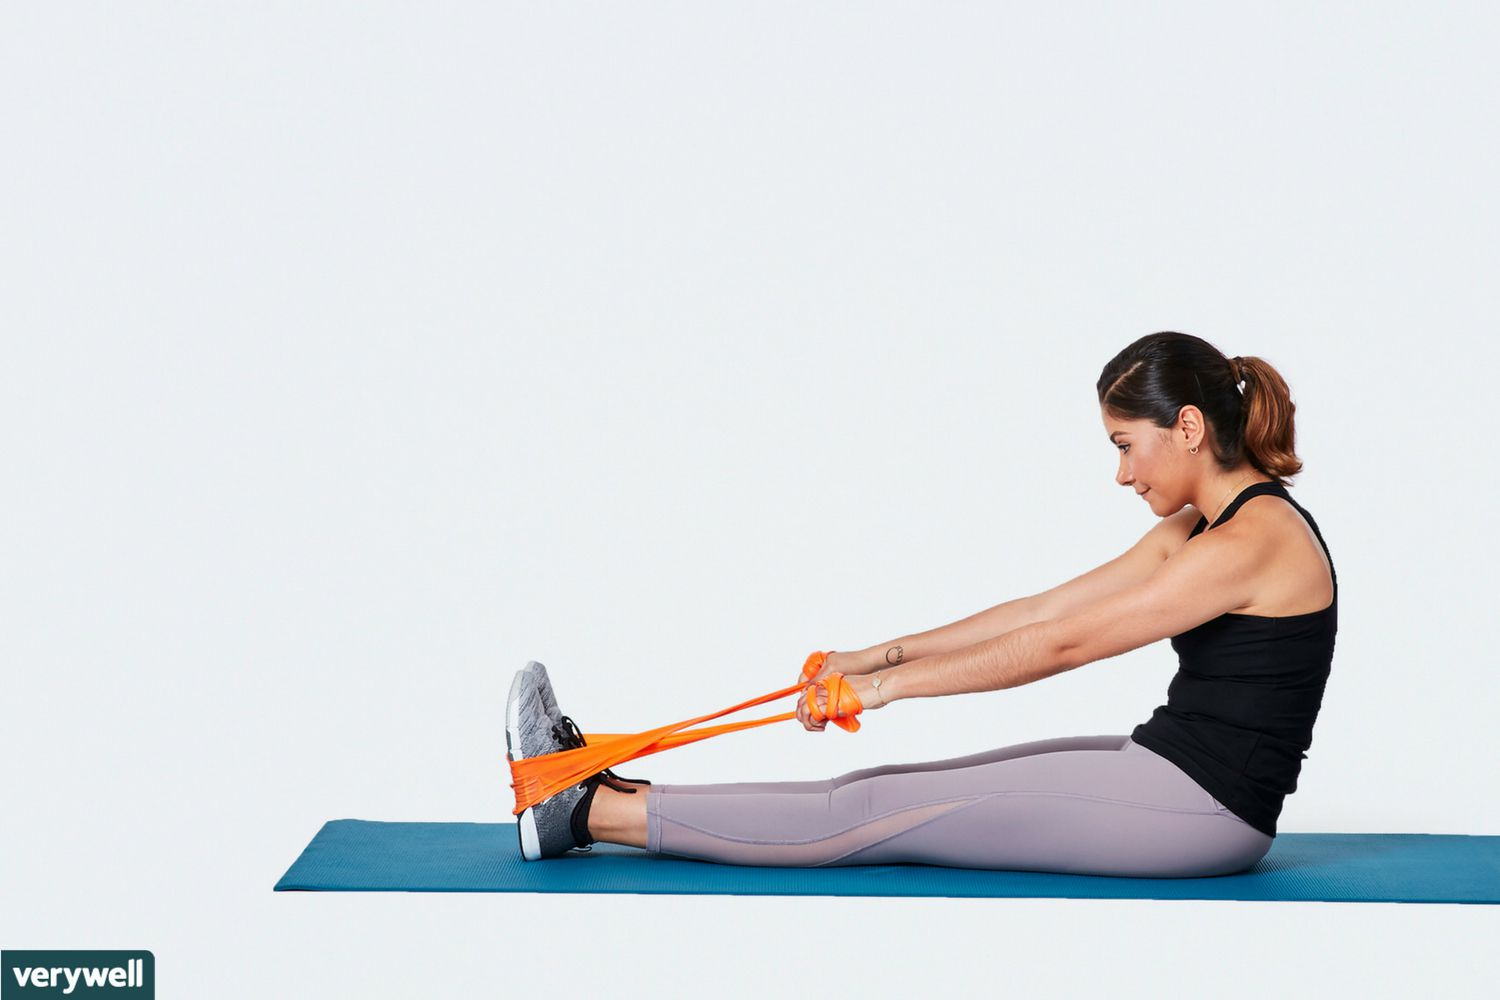 300c910f6 Total Body Stretching Routine With Resistance Bands